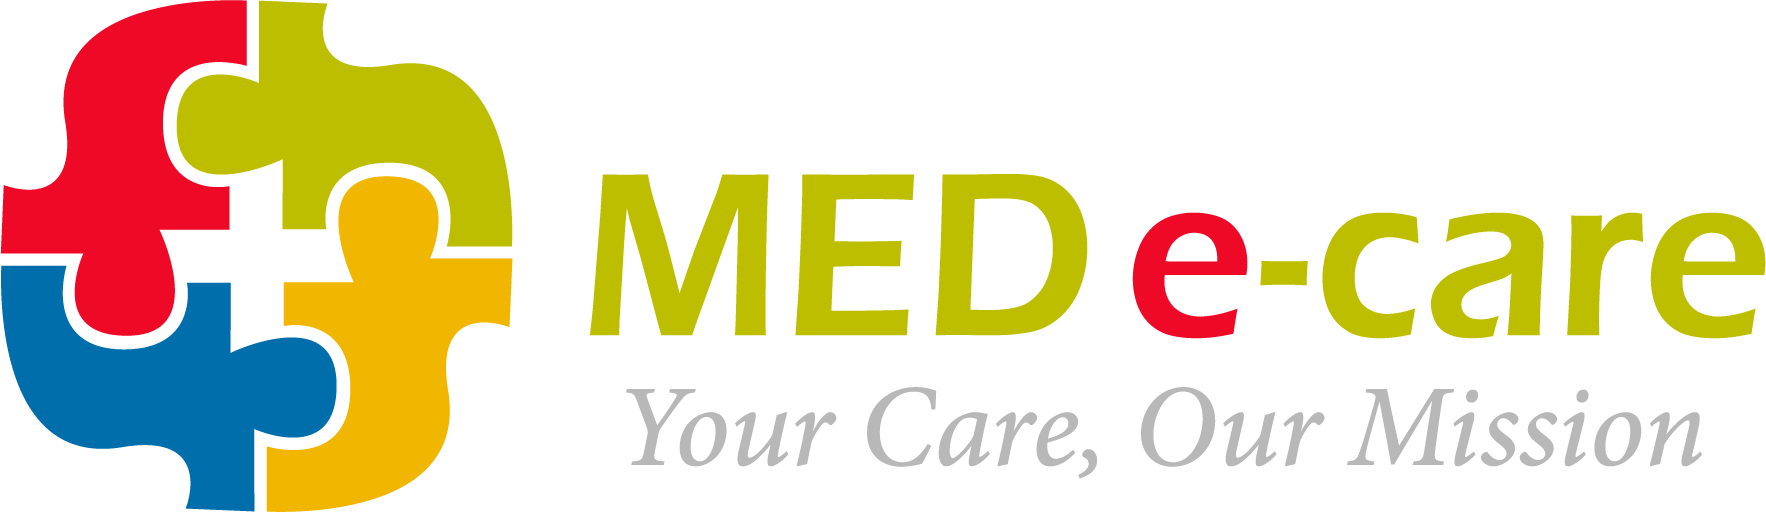 Your Care, Our Mission